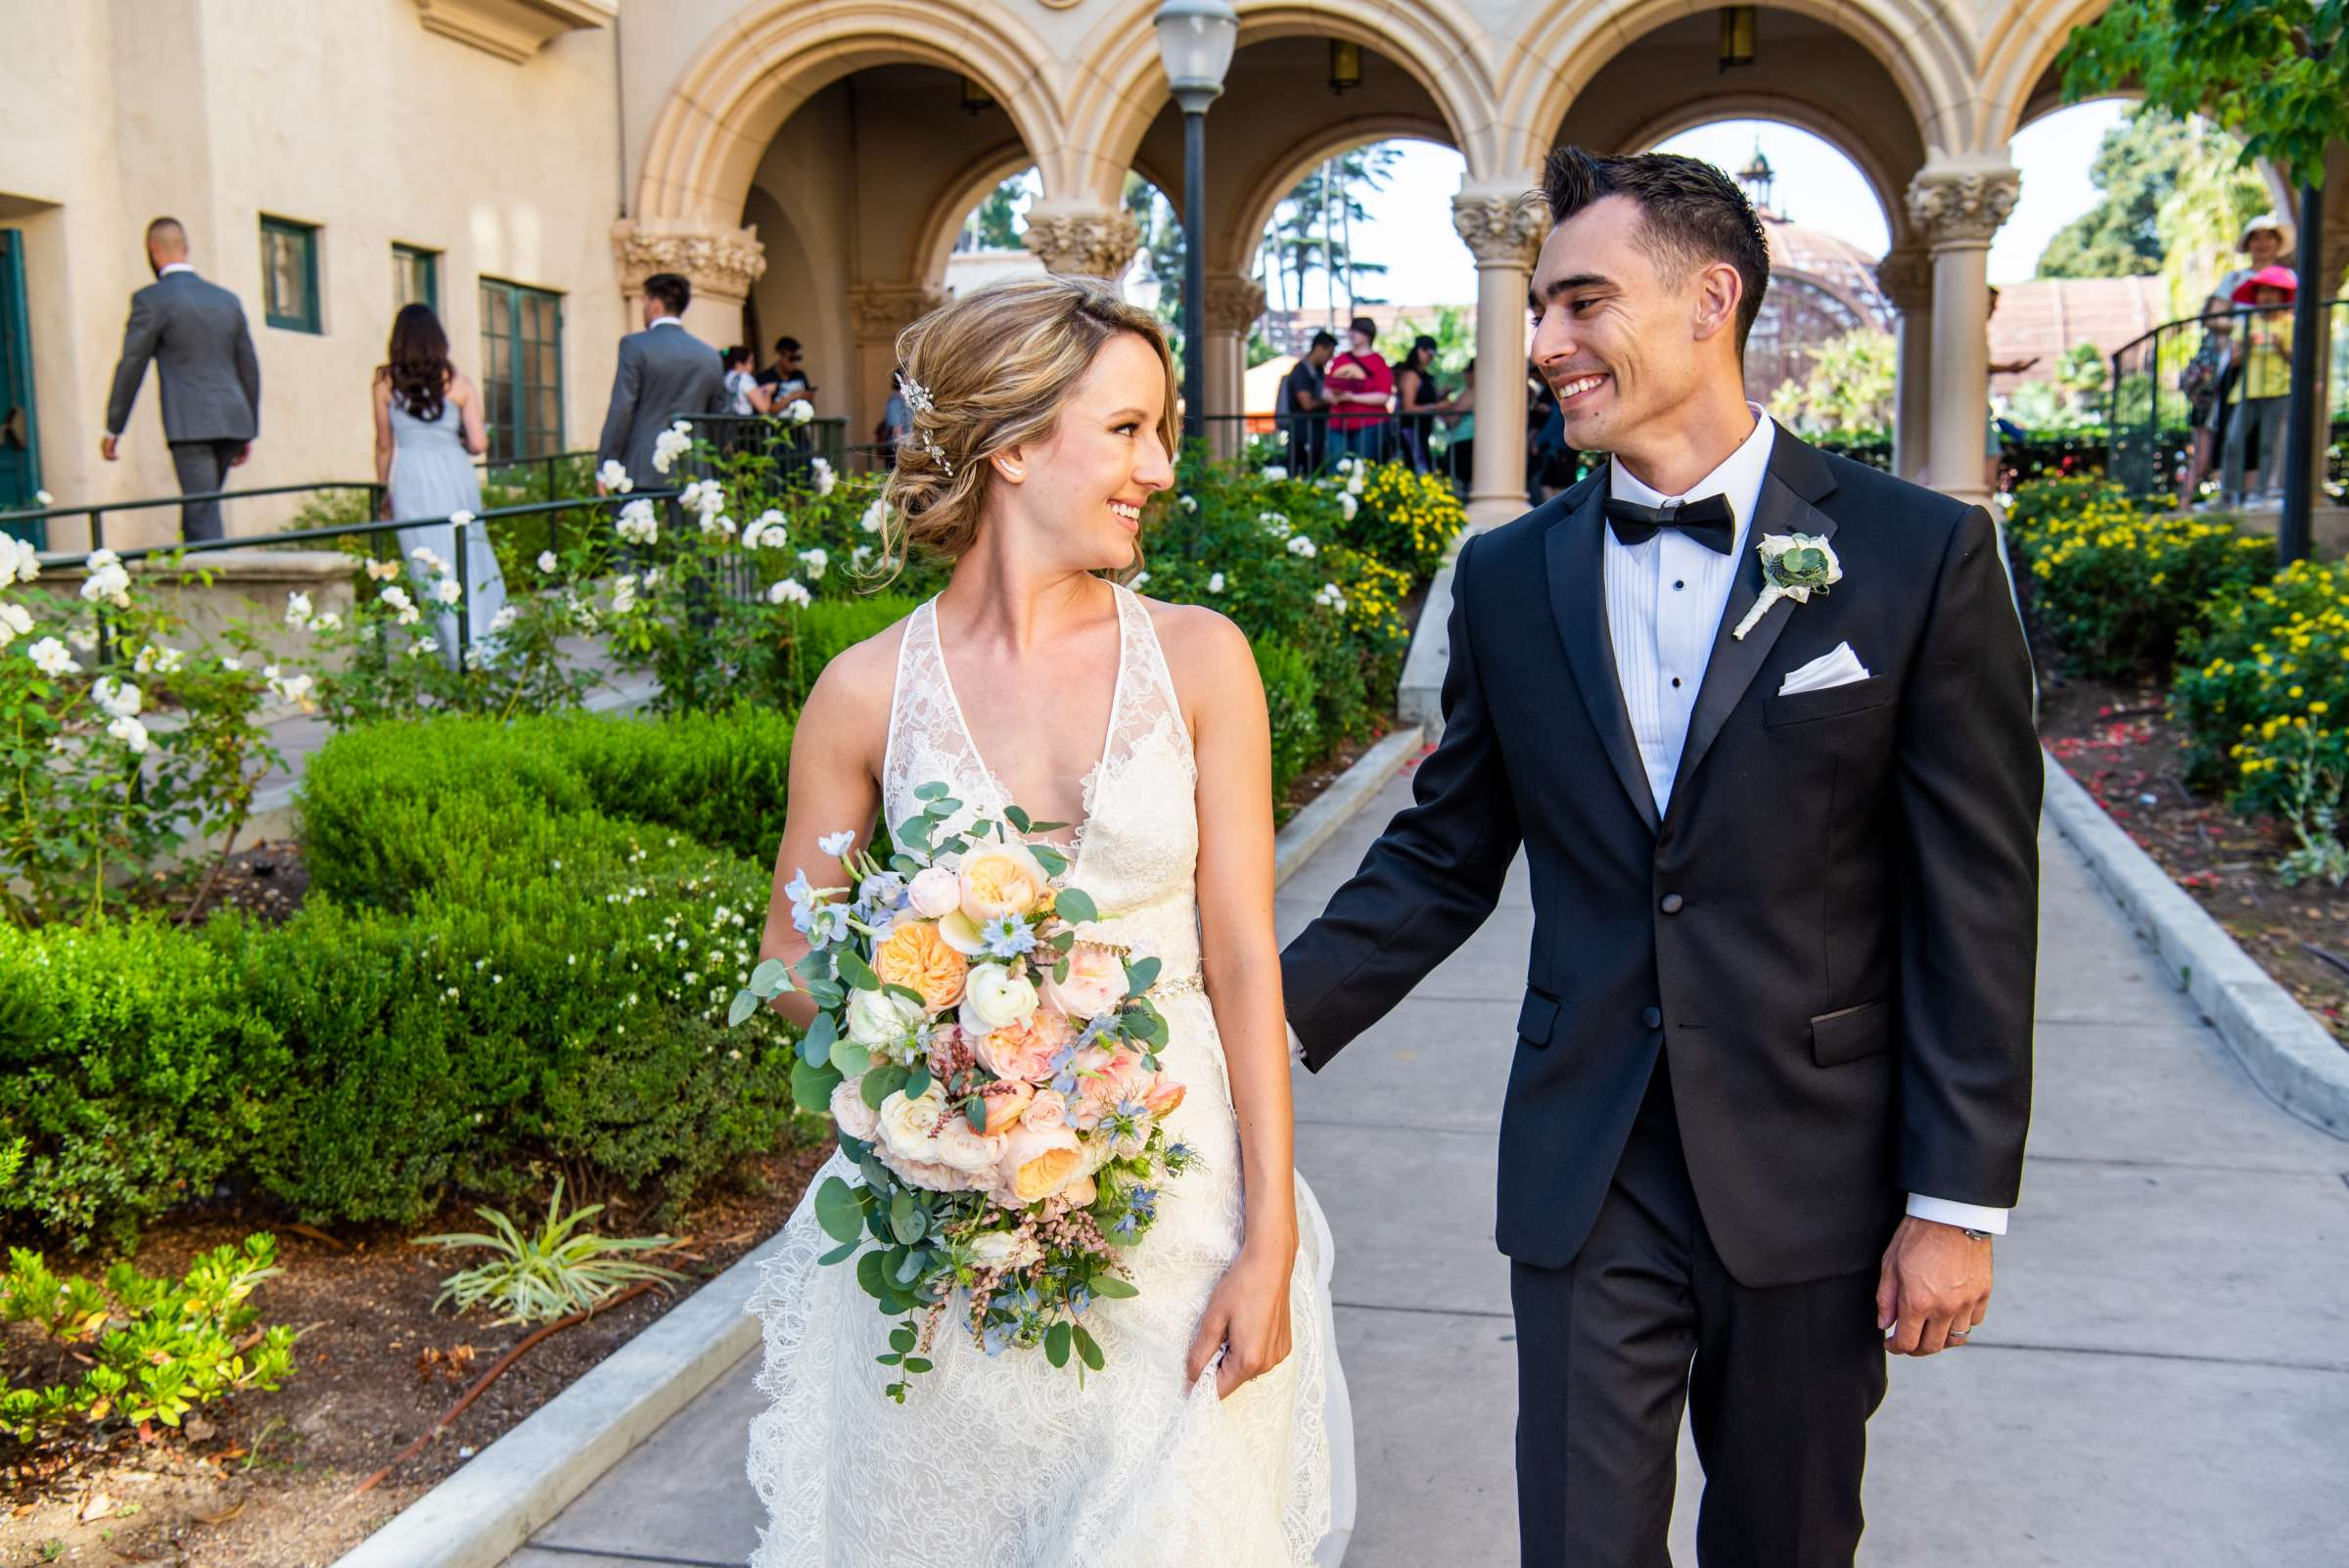 The Prado Wedding coordinated by Bliss Events, Sara and Marvin Wedding Photo #559580 by True Photography